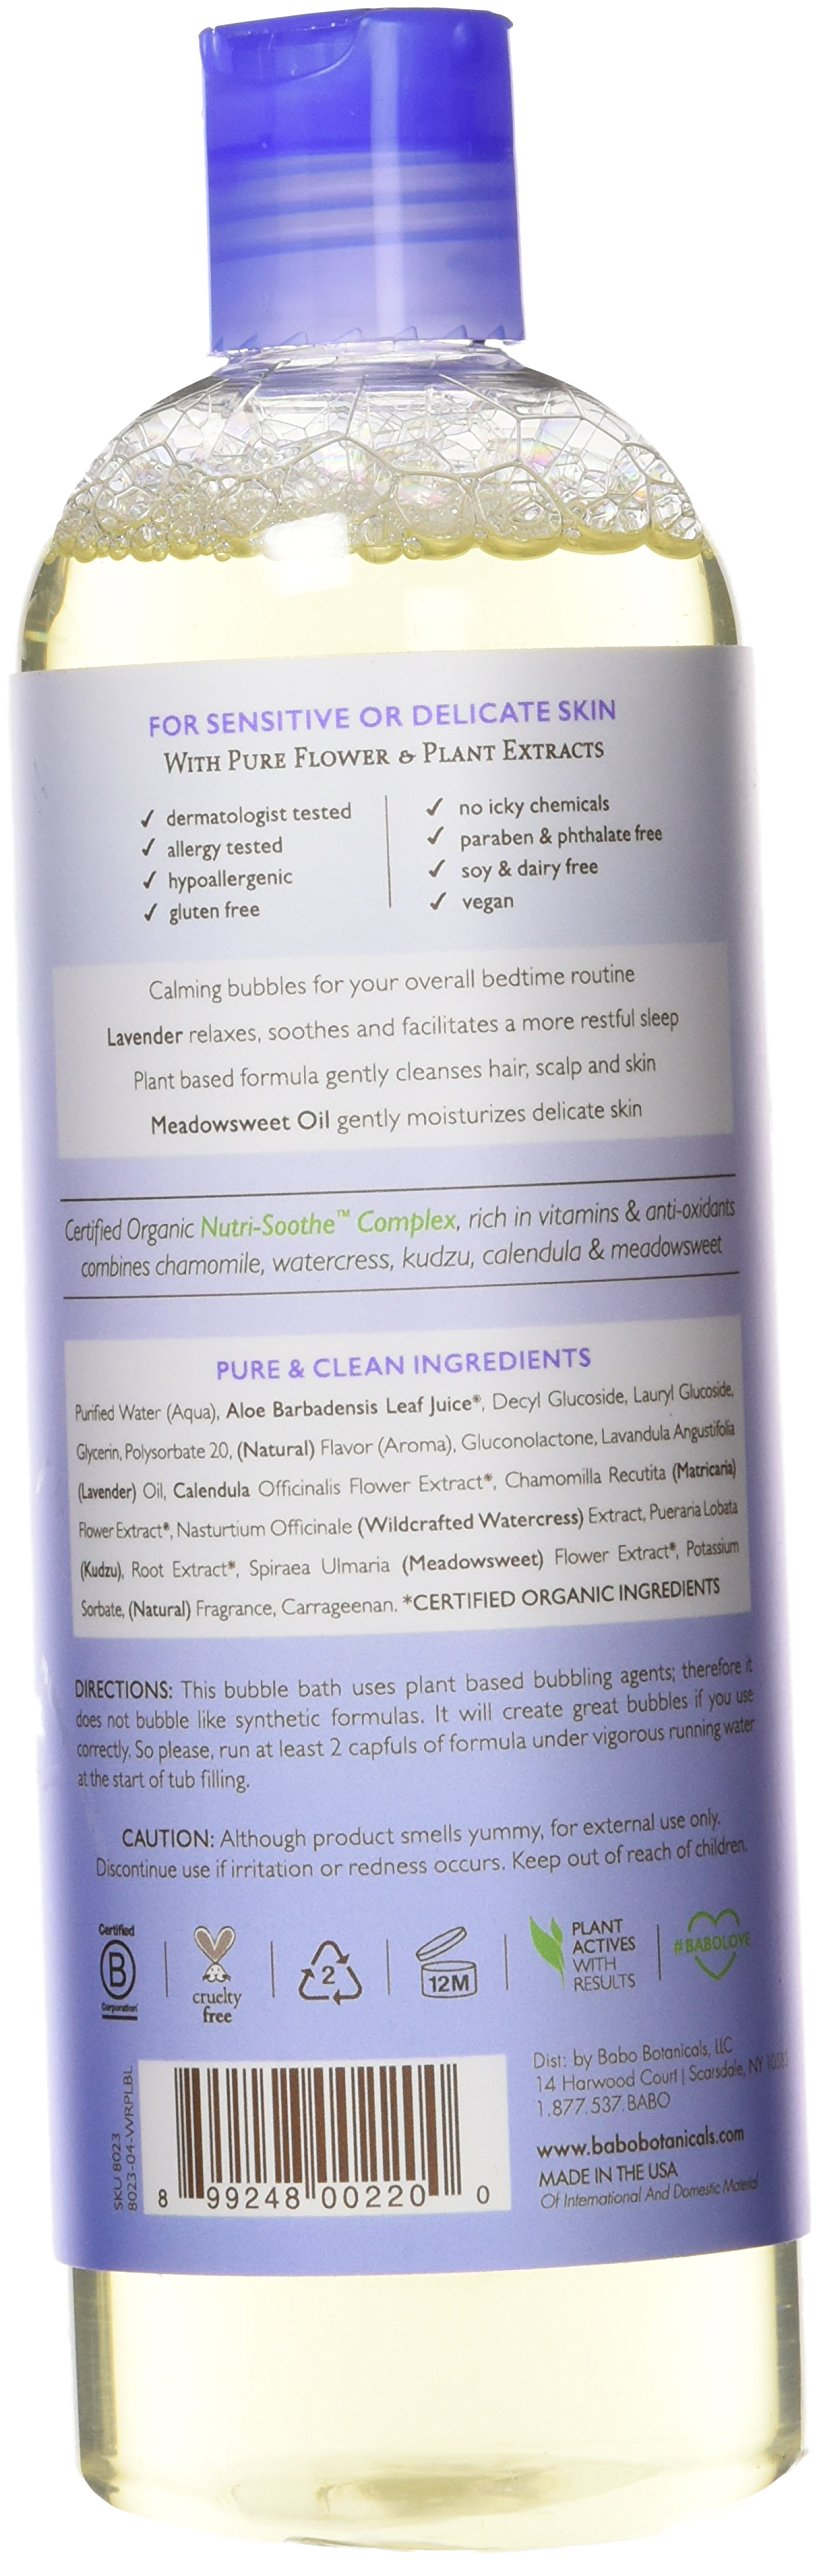 Babo Botanicals Lavender Meadowsweet Calming Baby Bubble Bath & Wash, 15 ounces by Babo Botanicals (Image #2)